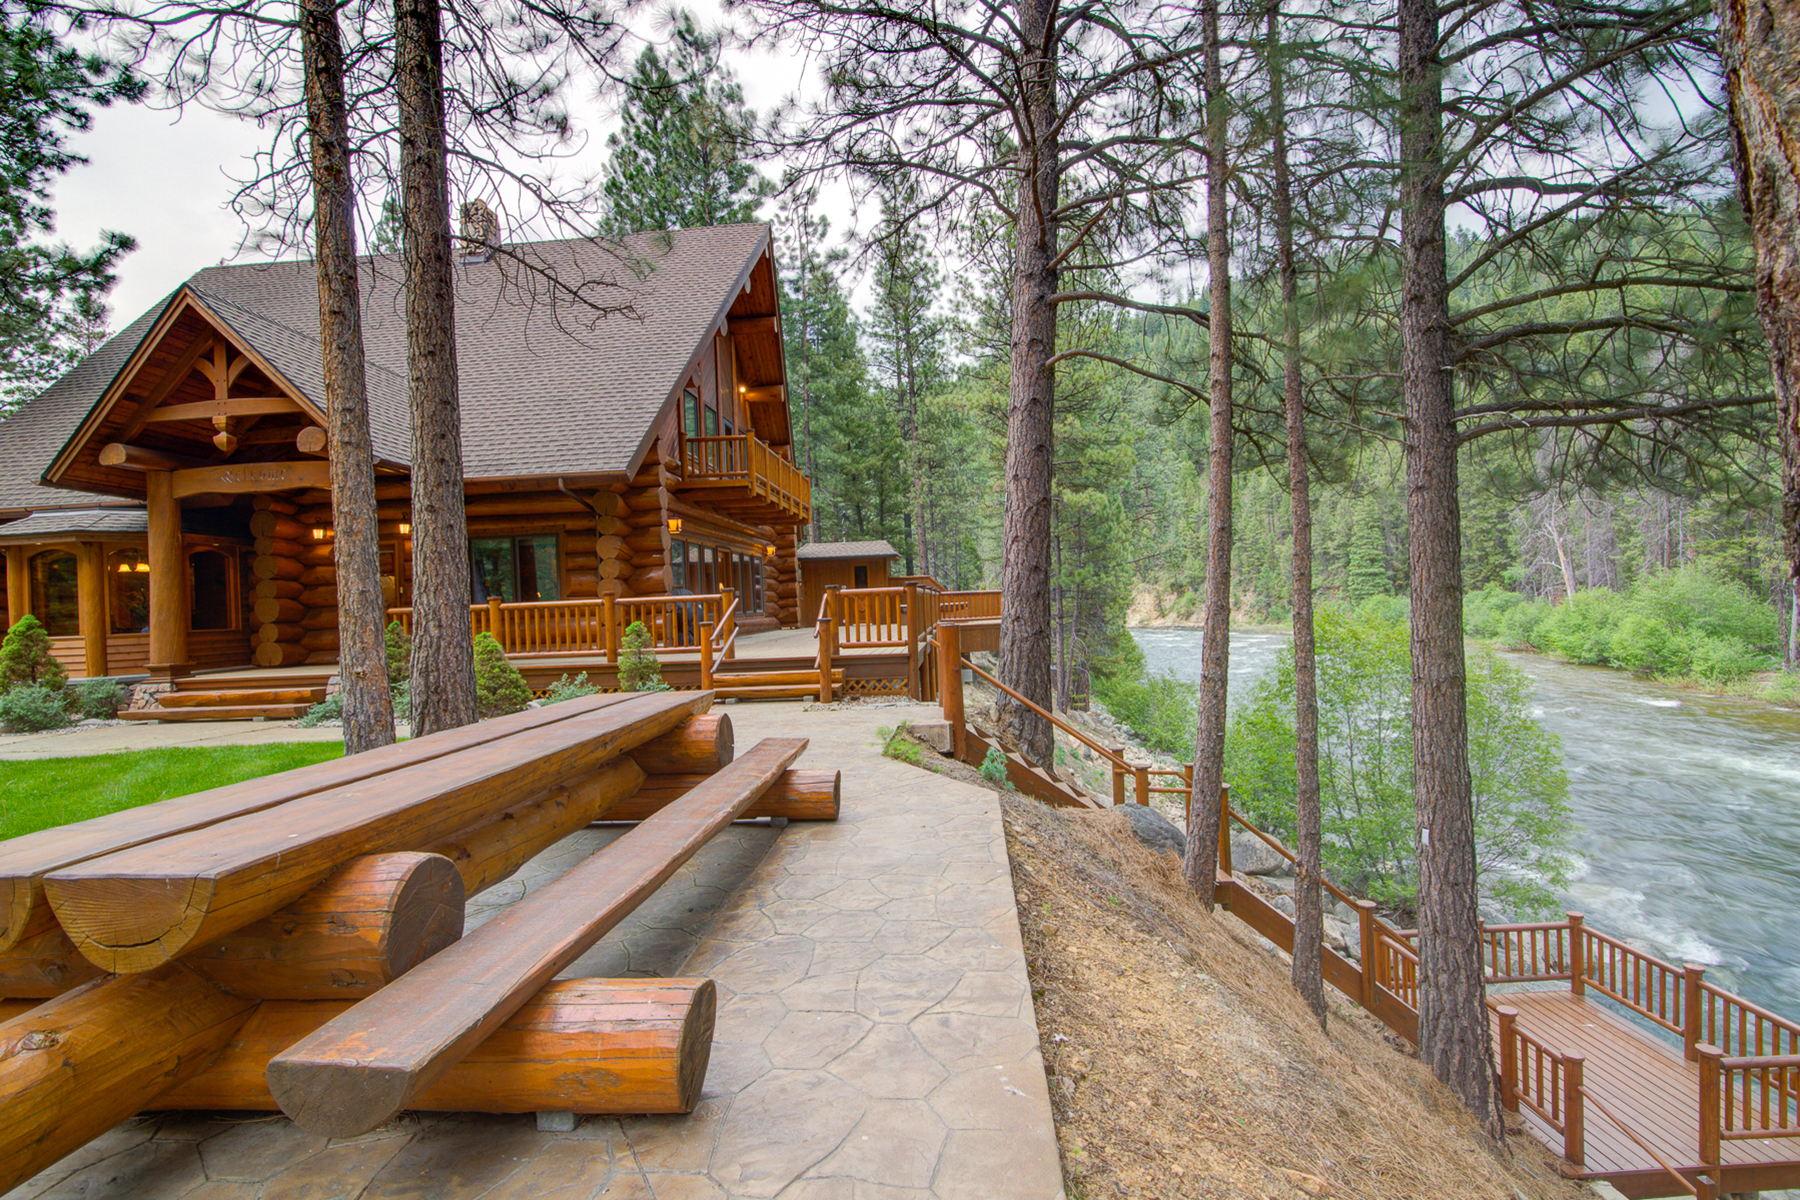 Additional photo for property listing at 6300 West Fork Road 6300  West Fork Rd Darby, Montana 59829 United States